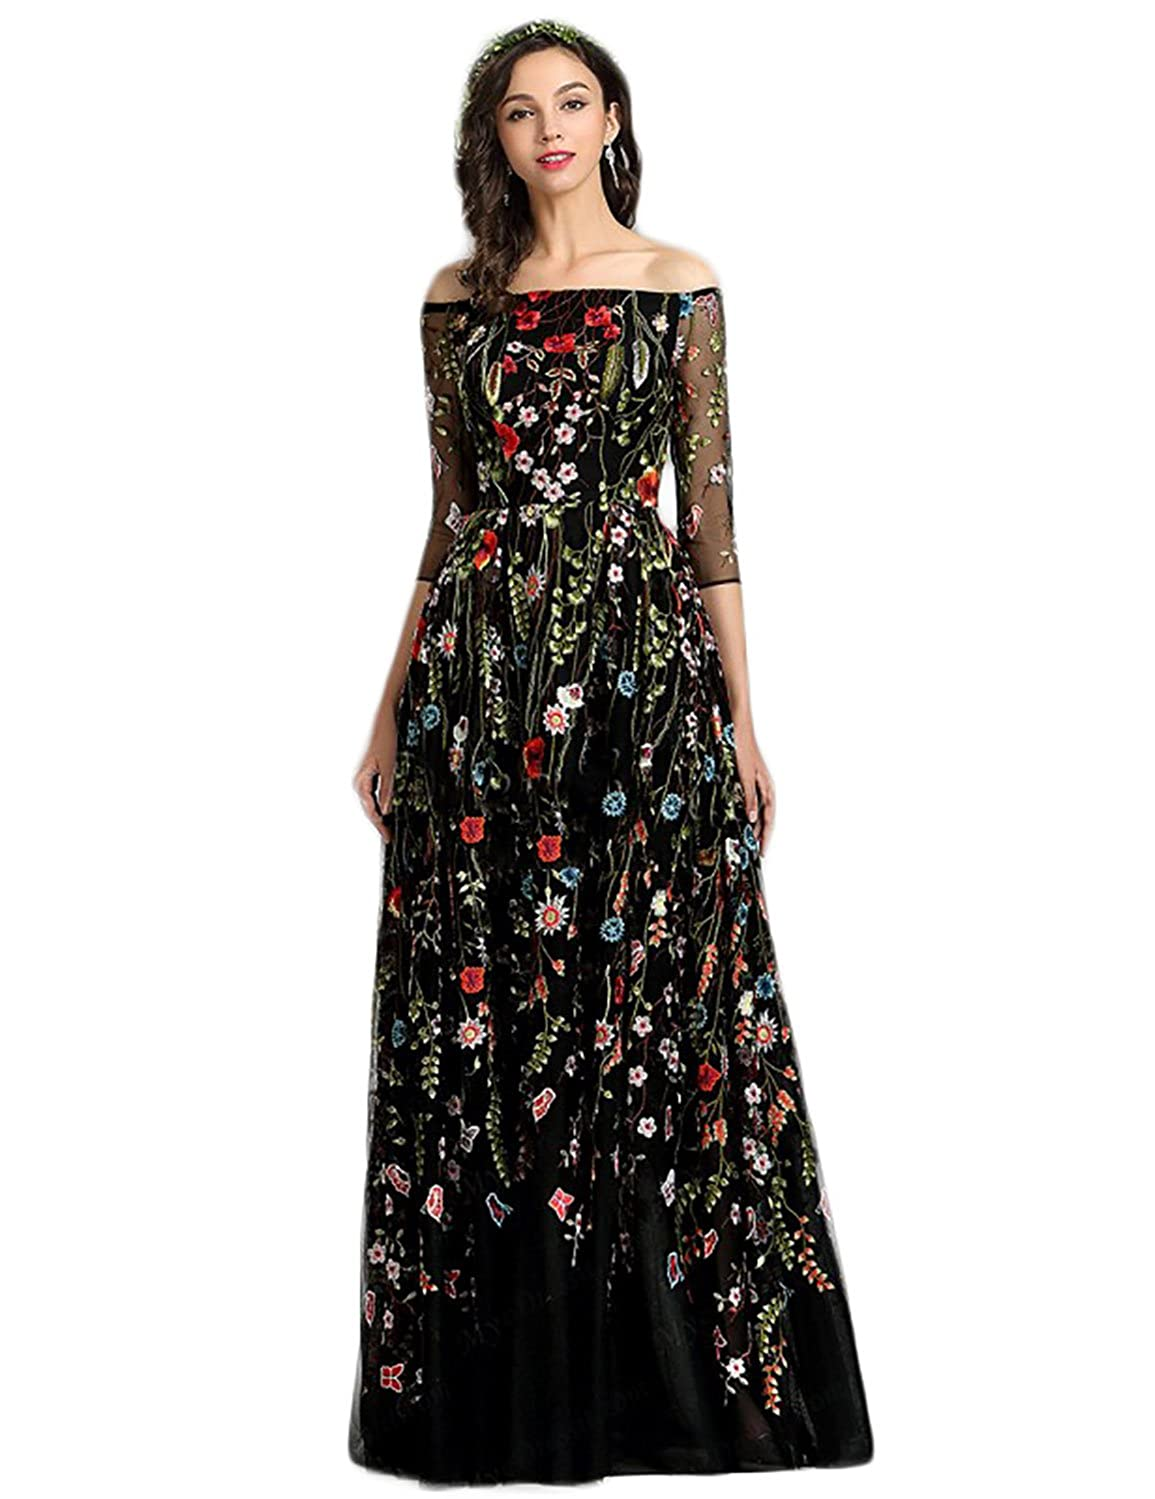 Blackoff Shoulder YMSHA Womens Long Embroidery Lace Prom Party Dress Backless Formal Evening Gown 28PM